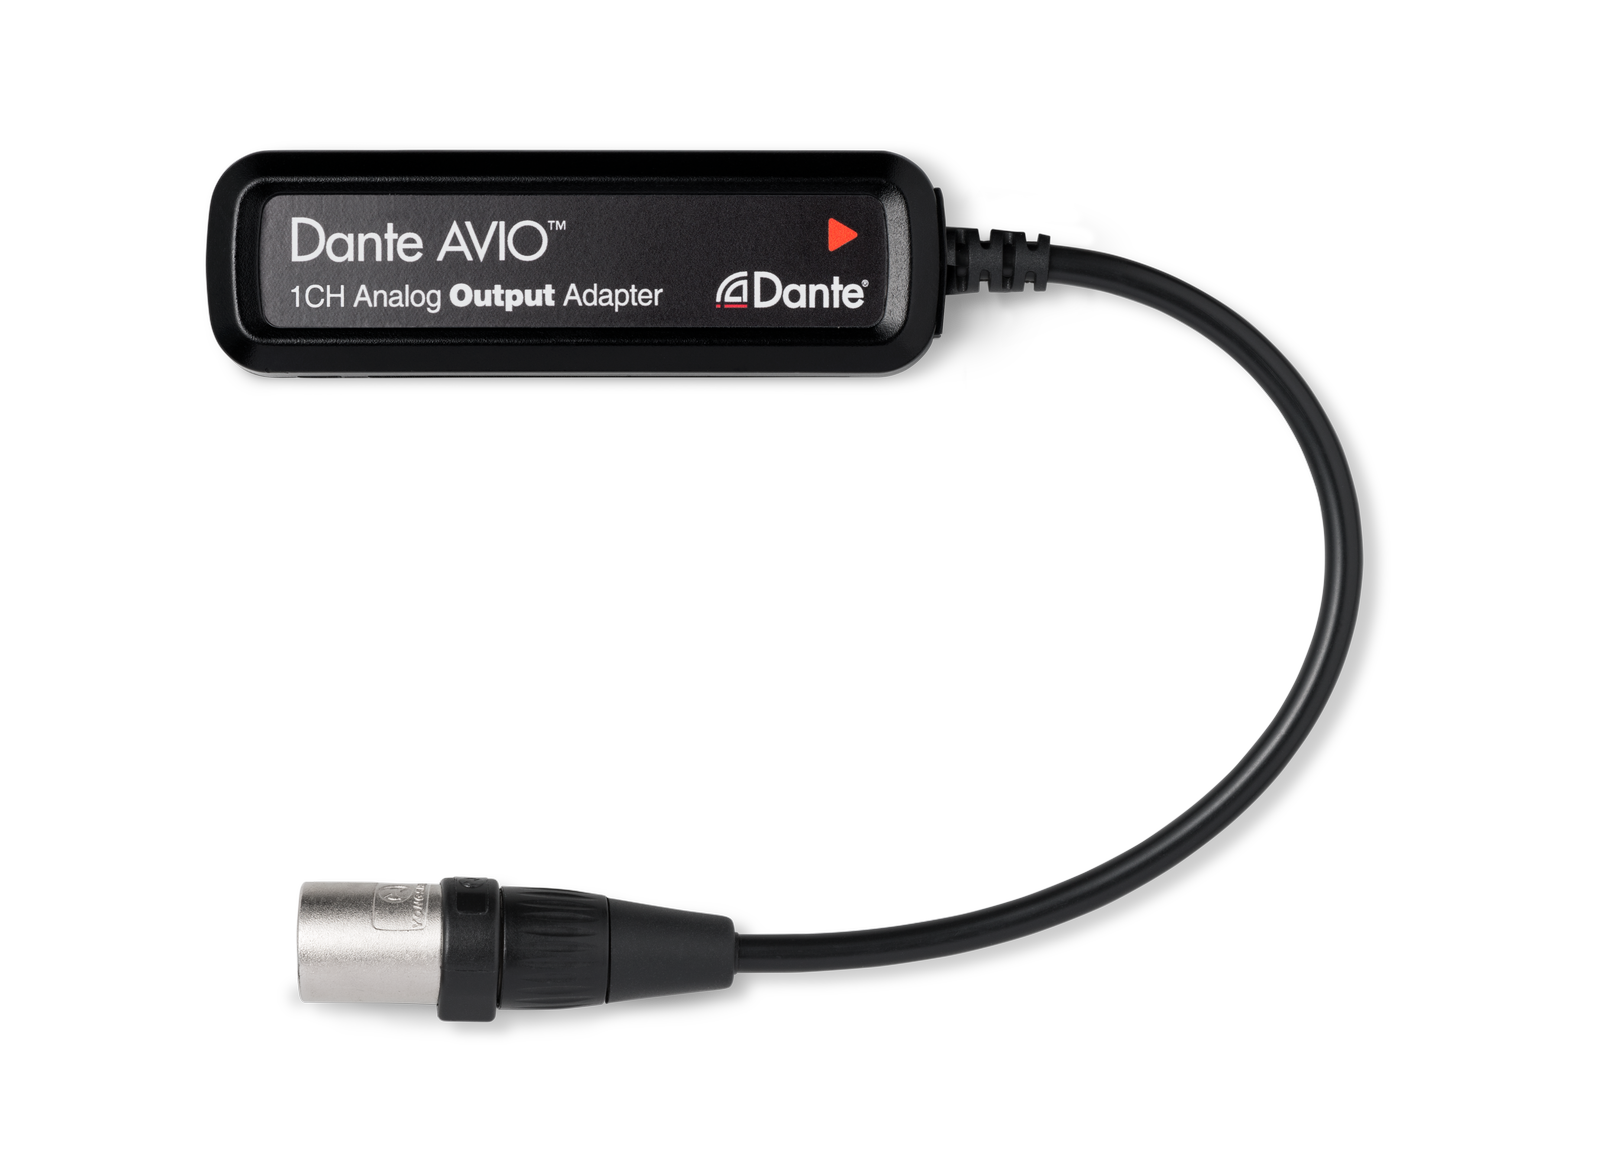 Dante AVIO Analog 1 Ch Output Adapter